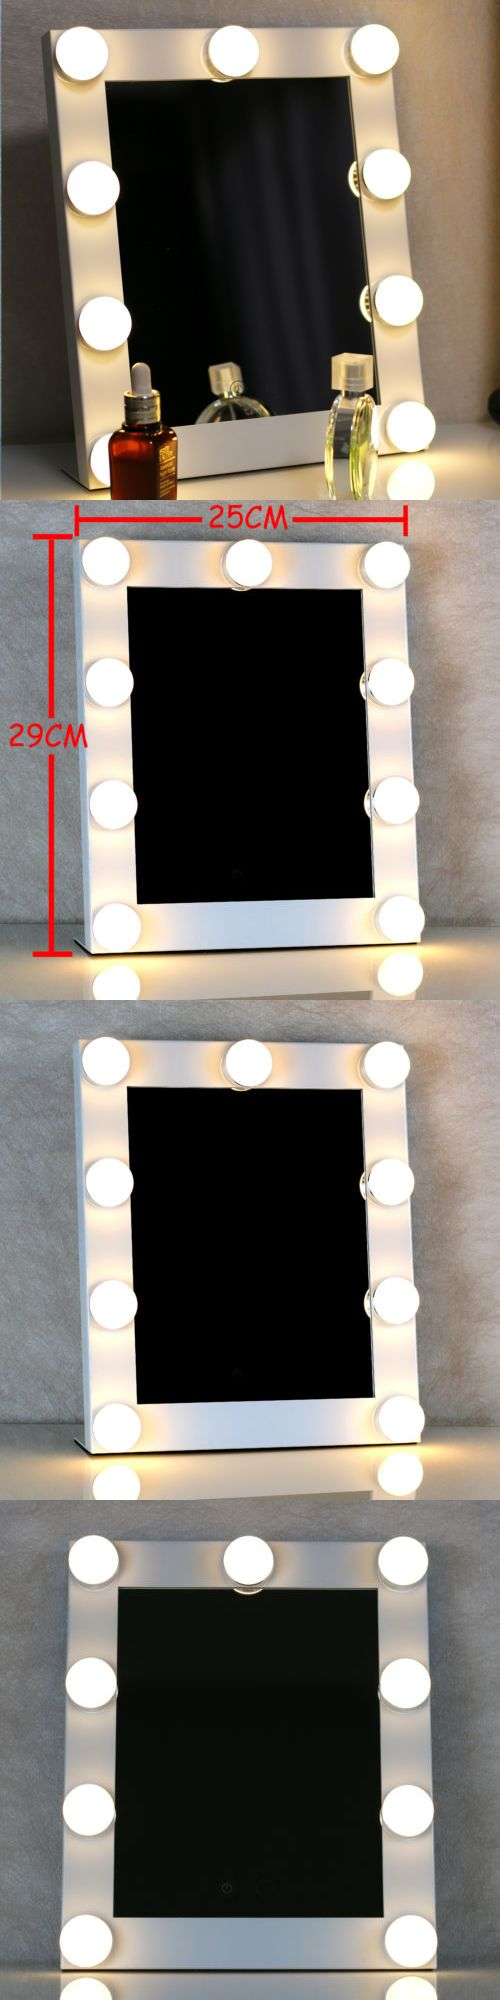 Makeup Mirrors: New White Vanity Lighted Hollywood Makeup Mirror With Dimmer Stage Beauty Mirror BUY IT NOW ONLY: $79.0